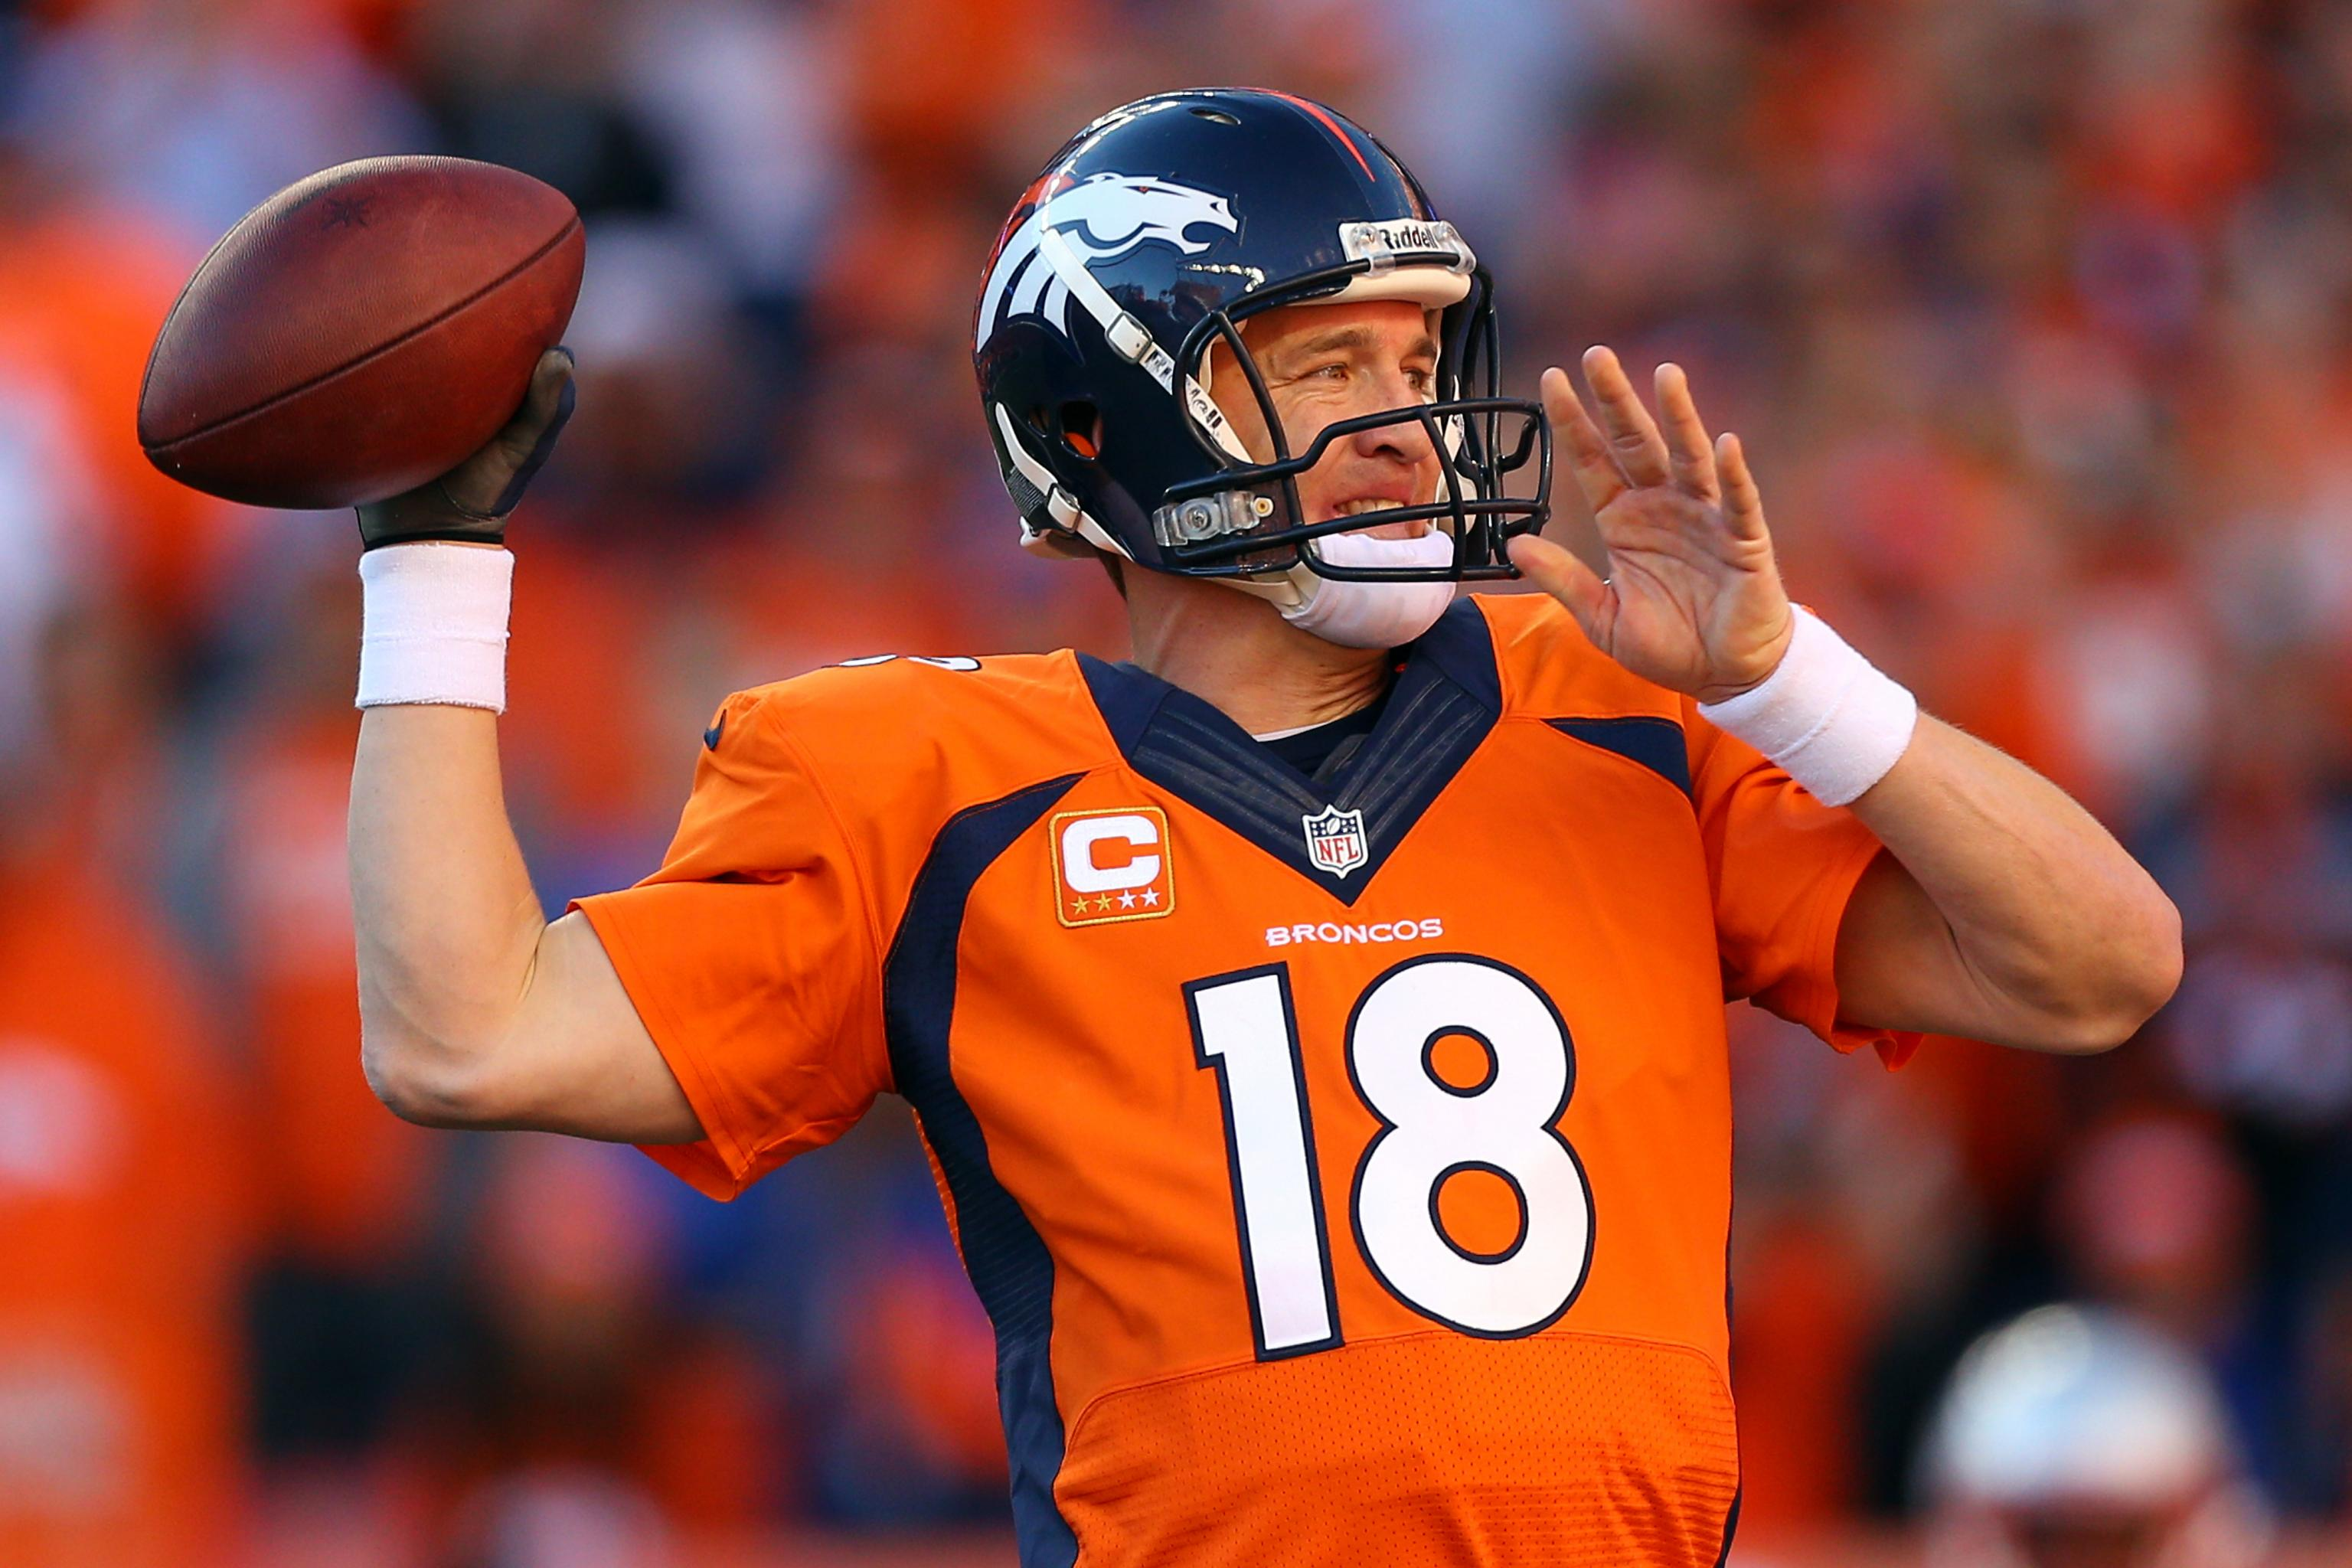 Betting line broncos seahawks superbowl ben linfoot value bet sporting life